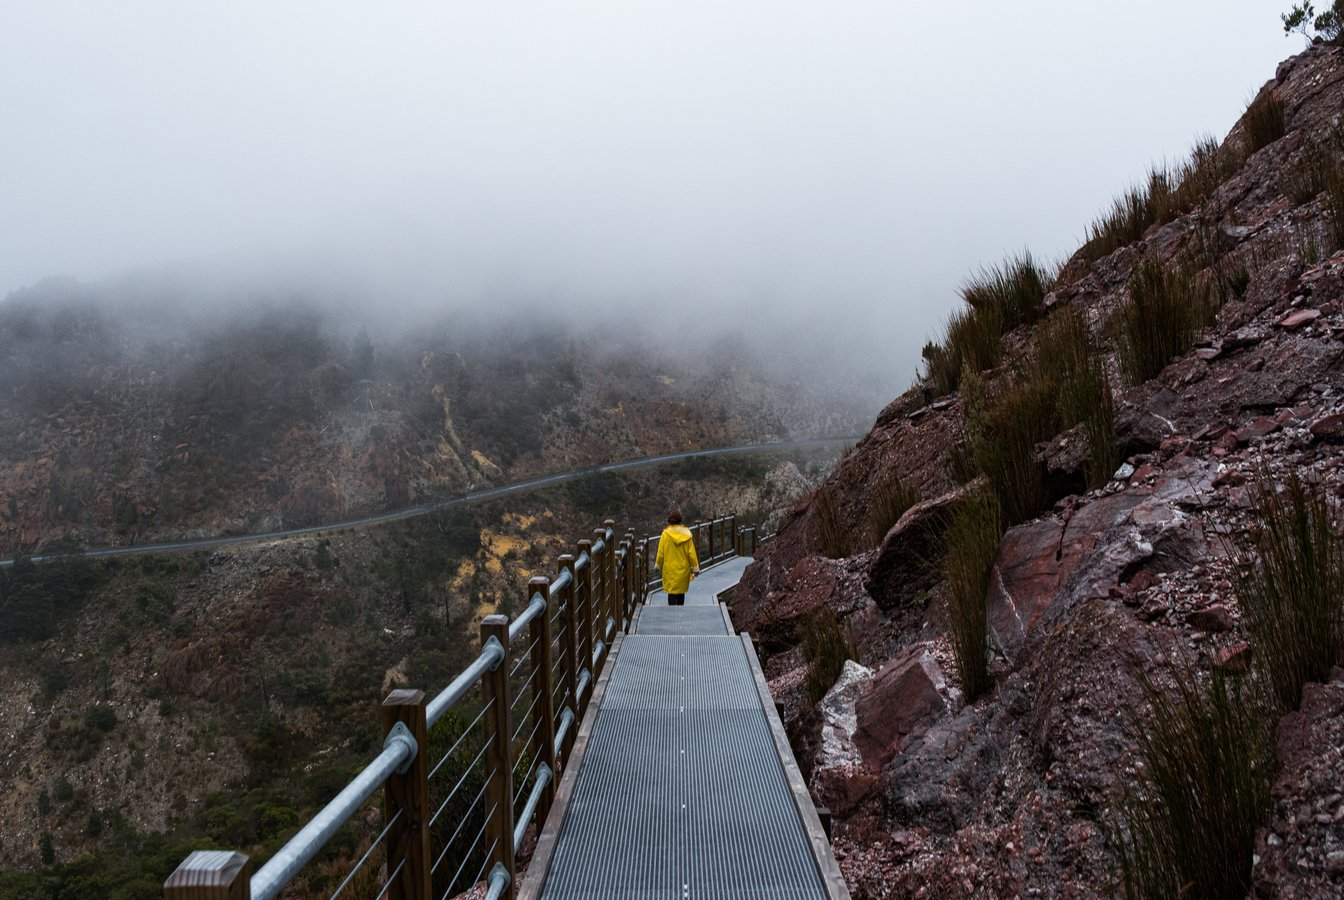 Person in yellow coat walking on a boardwalk next to a cliff. Foggy landscape and twisting road in the distance.